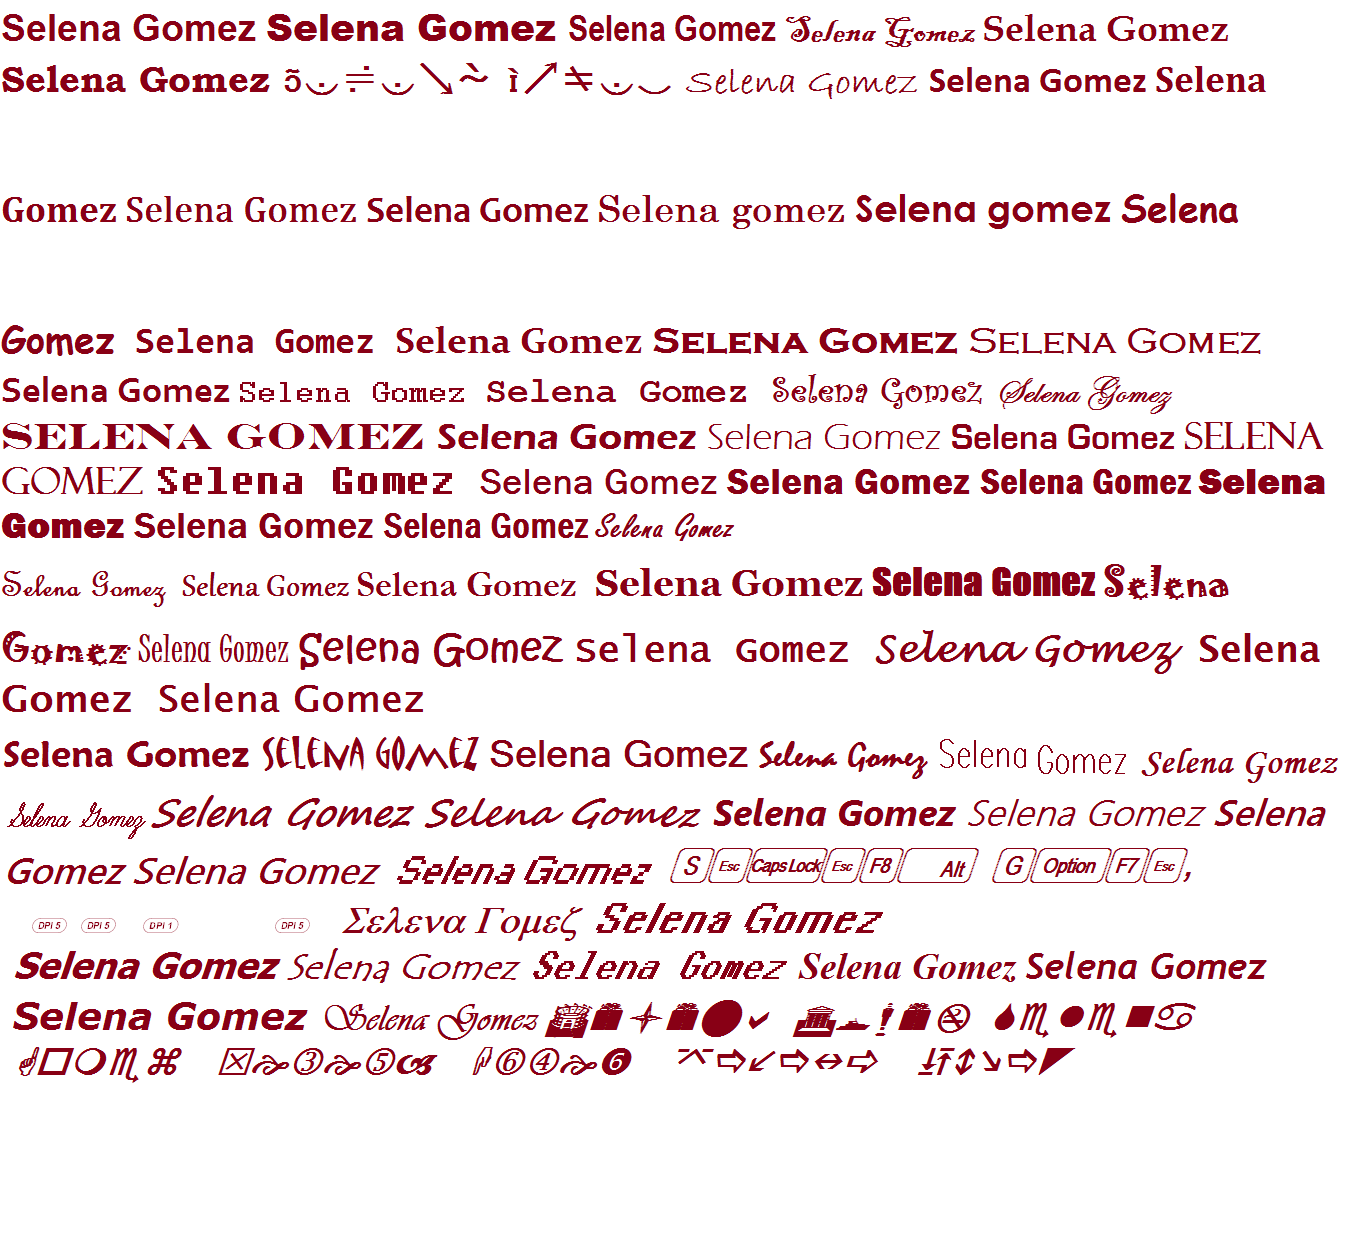 Angelbell619 images how to write selena gomez in different letter hd angelbell619 images how to write selena gomez in different letter hd wallpaper and background photos expocarfo Choice Image